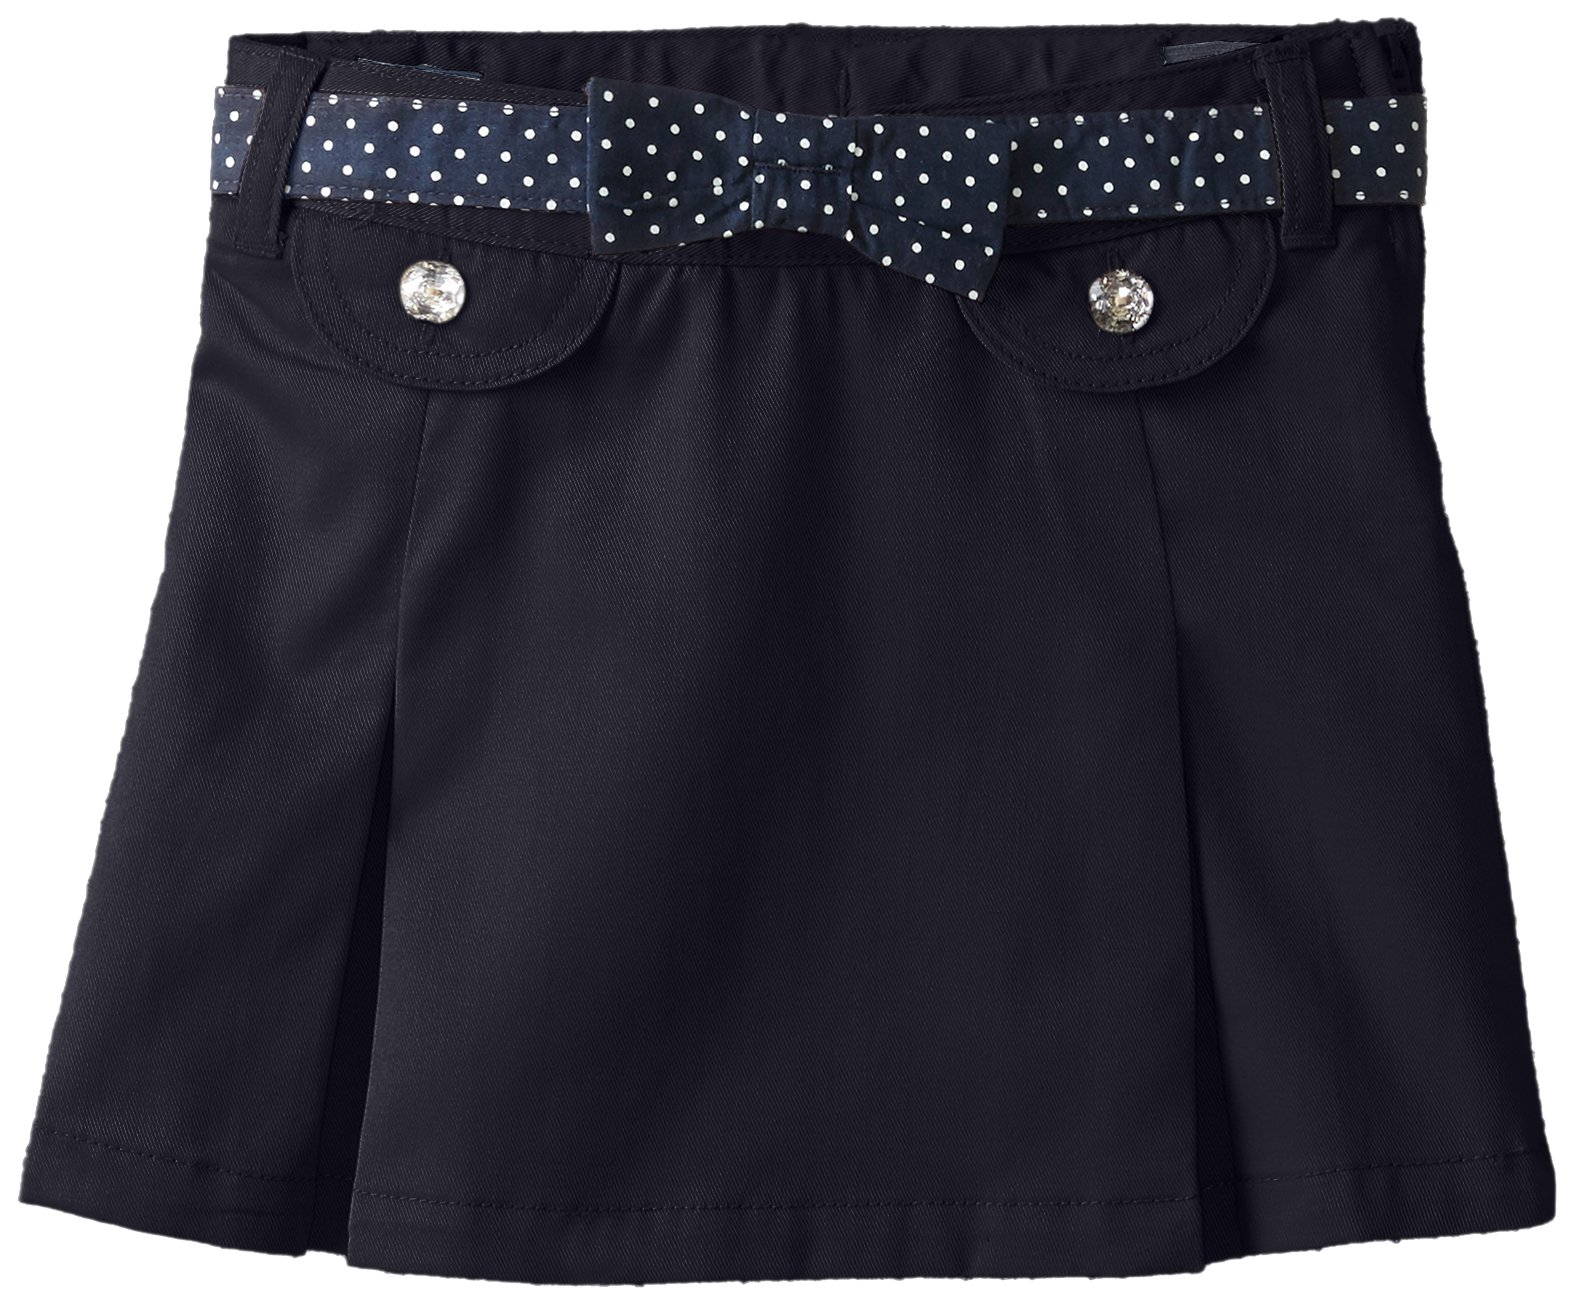 French Toast Little Girls' Polka Dot Belted Scooter, Navy, 5